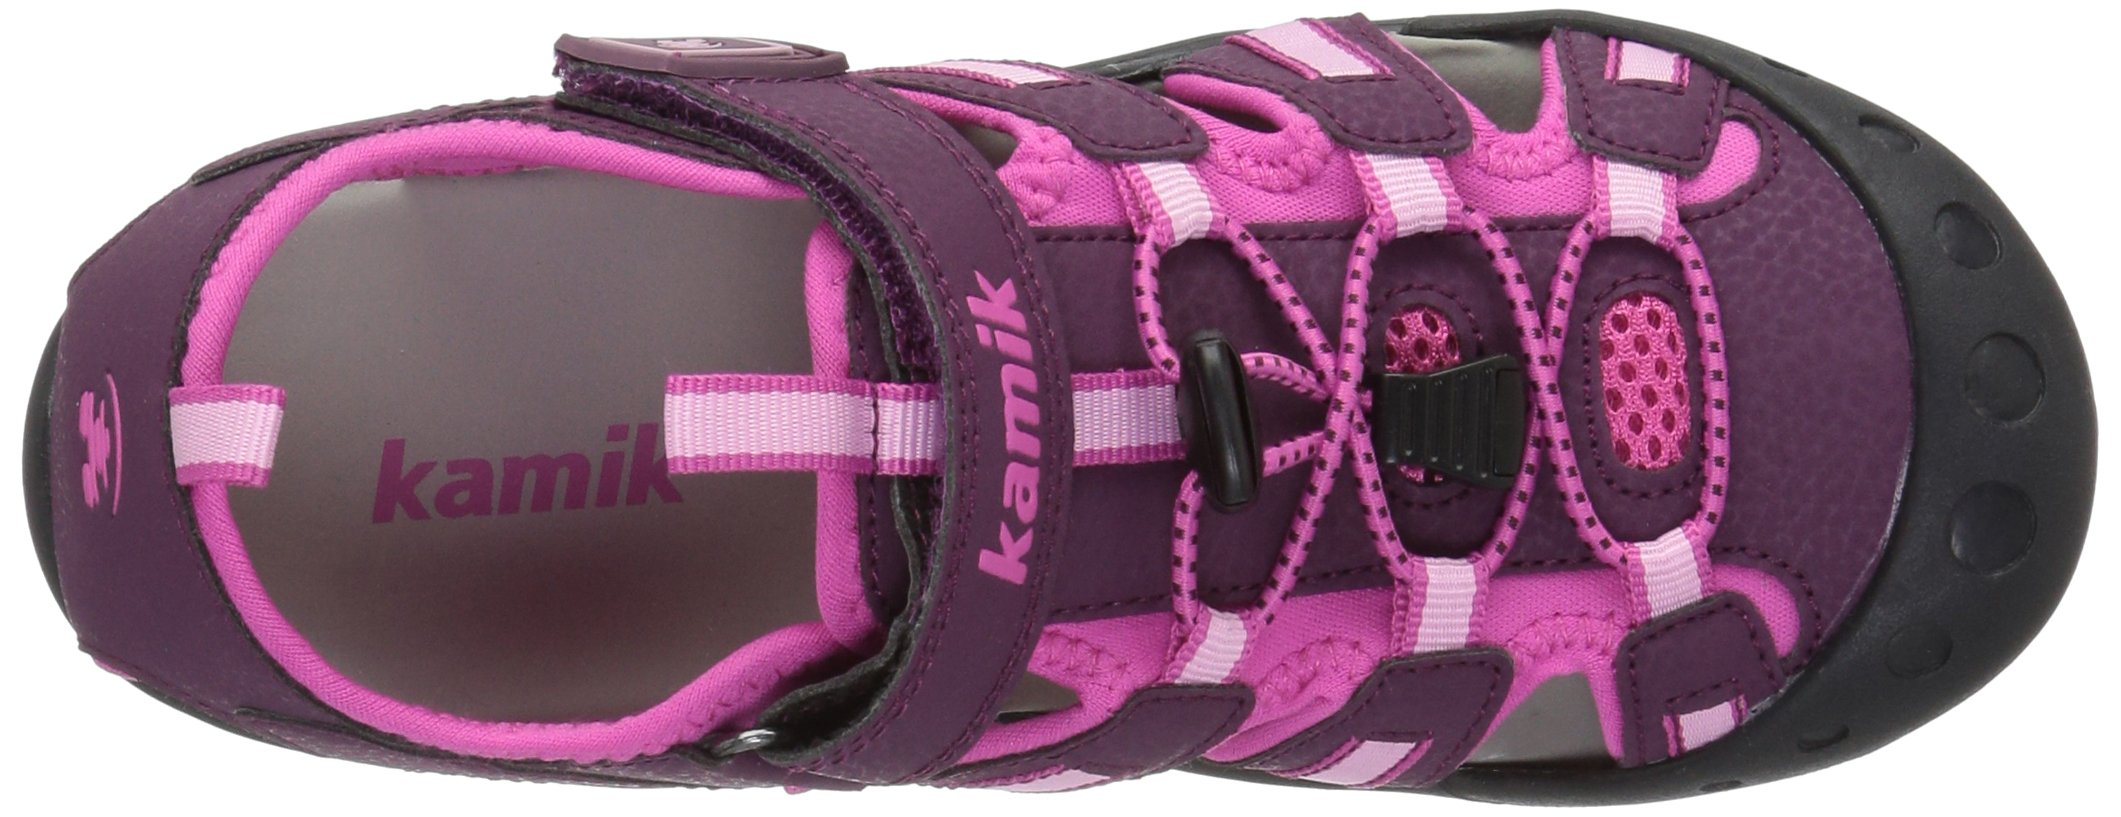 Kamik Toddler Crab Sandals Plum 4 by Kamik (Image #7)